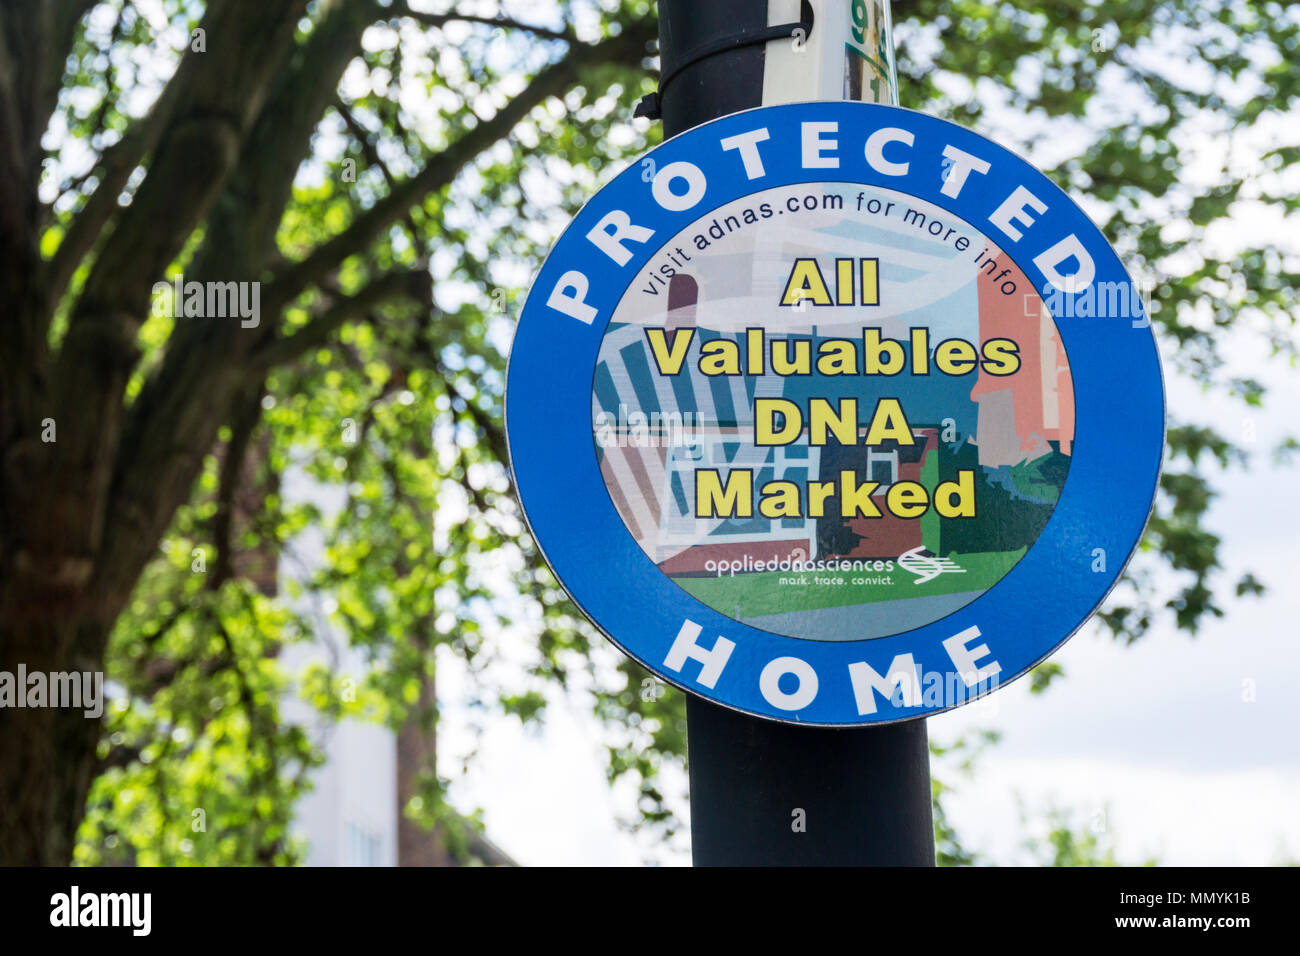 Crime prevention sign warns of DNA marked valuables - Stock Image